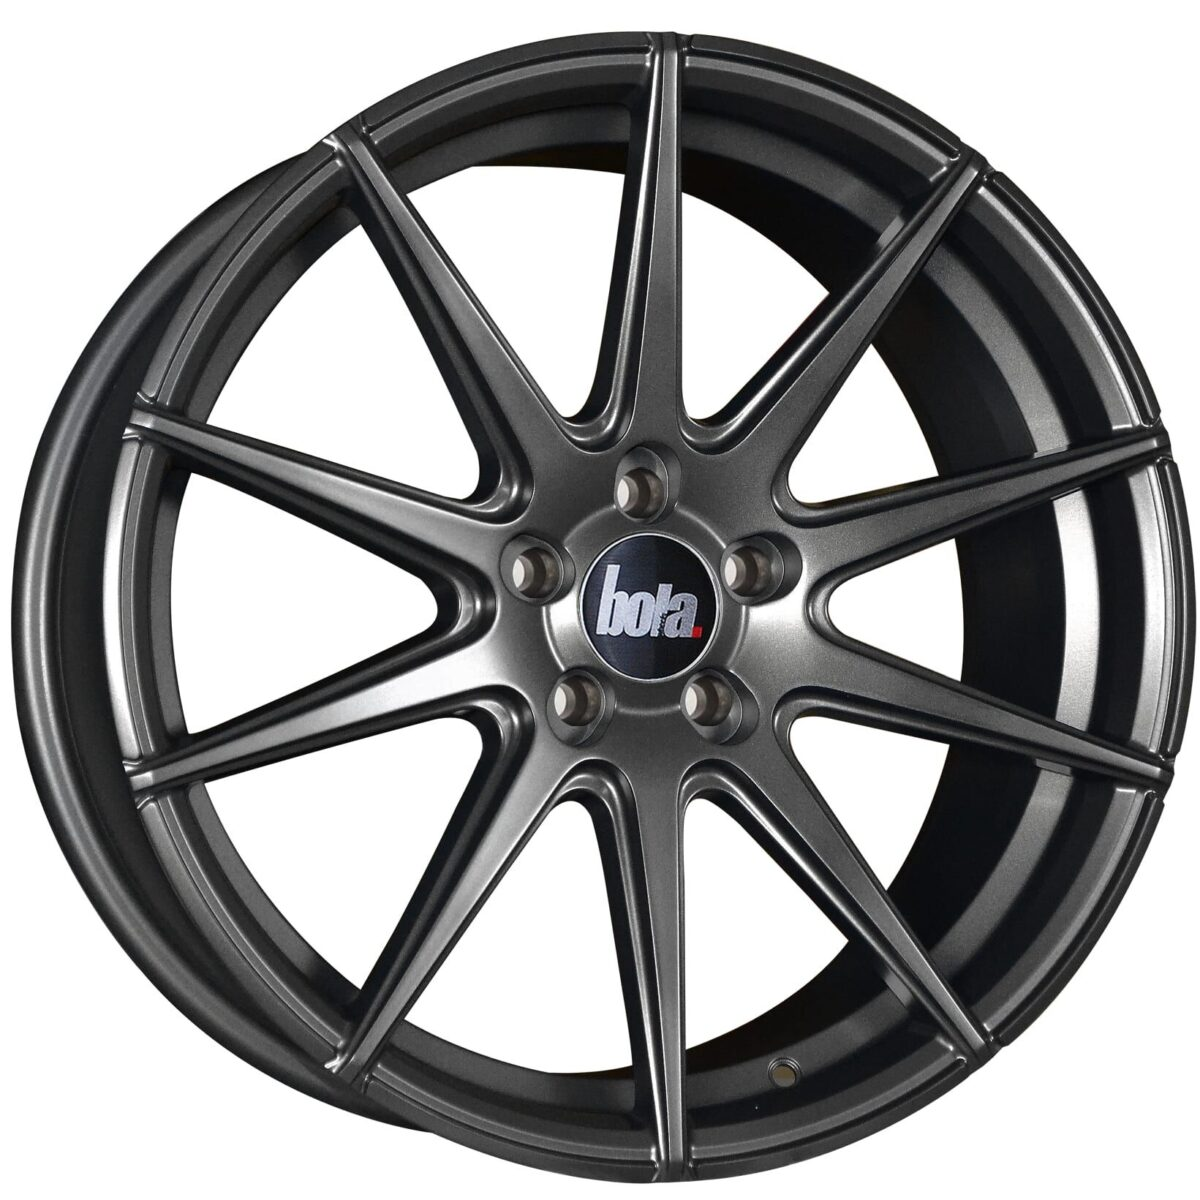 "19"" BOLA CSR Wheels - Matt Gunmetal - VW / Audi / Mercedes - 5x112"